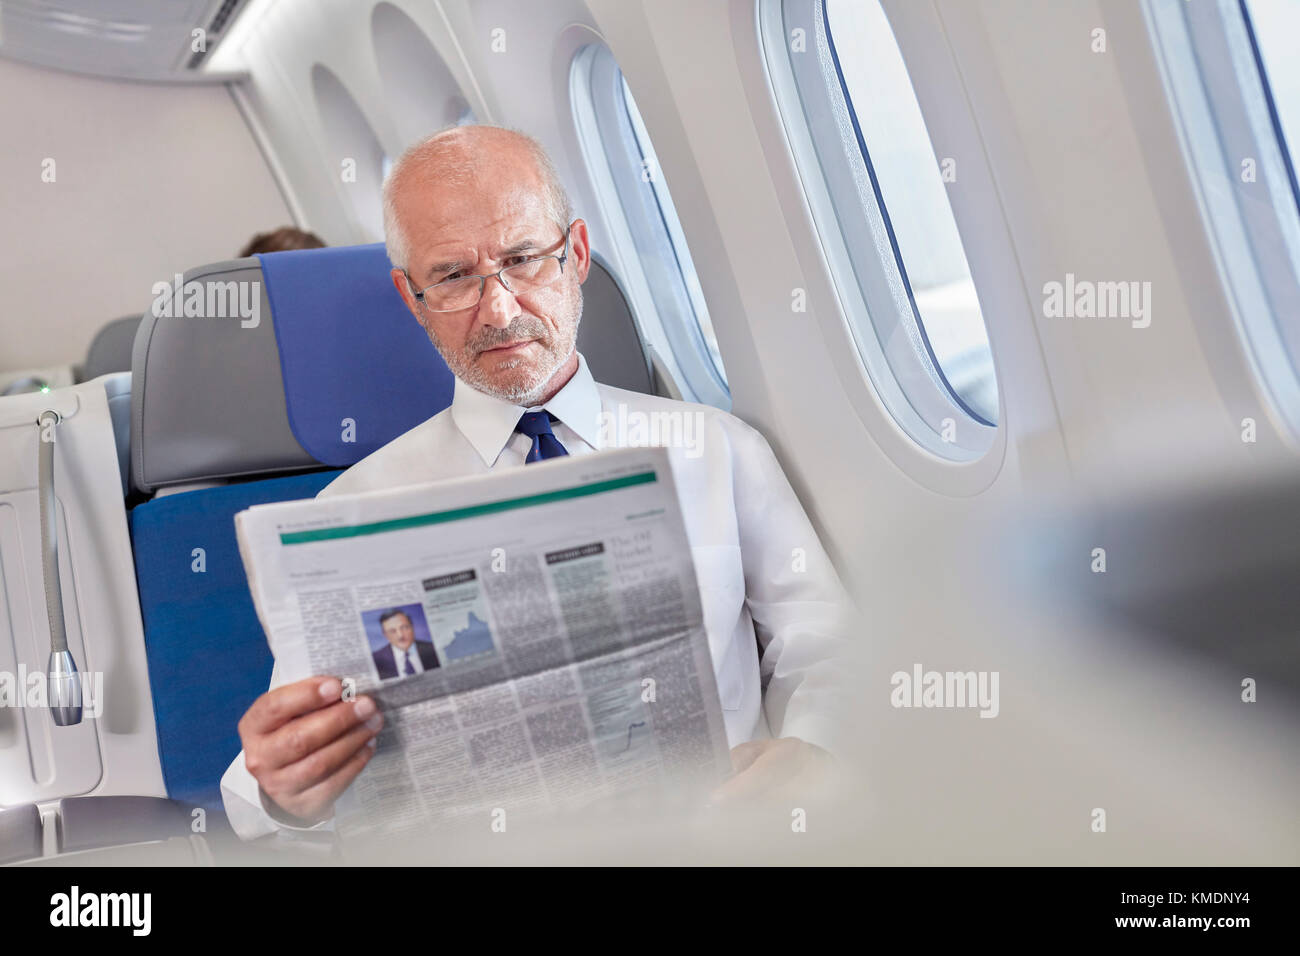 Businessman reading newspaper on airplane - Stock Image